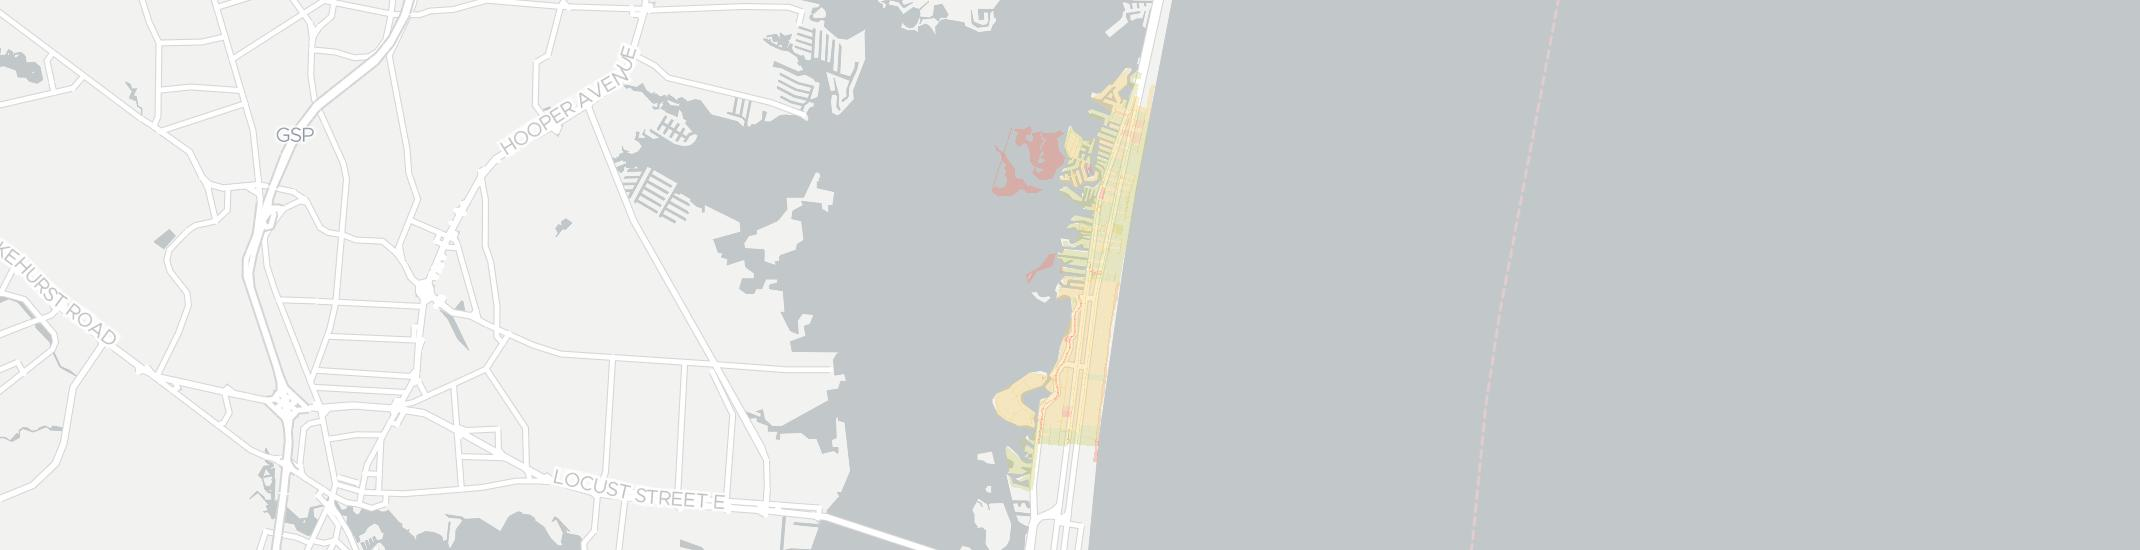 Lavallette Internet Competition Map. Click for interactive map.